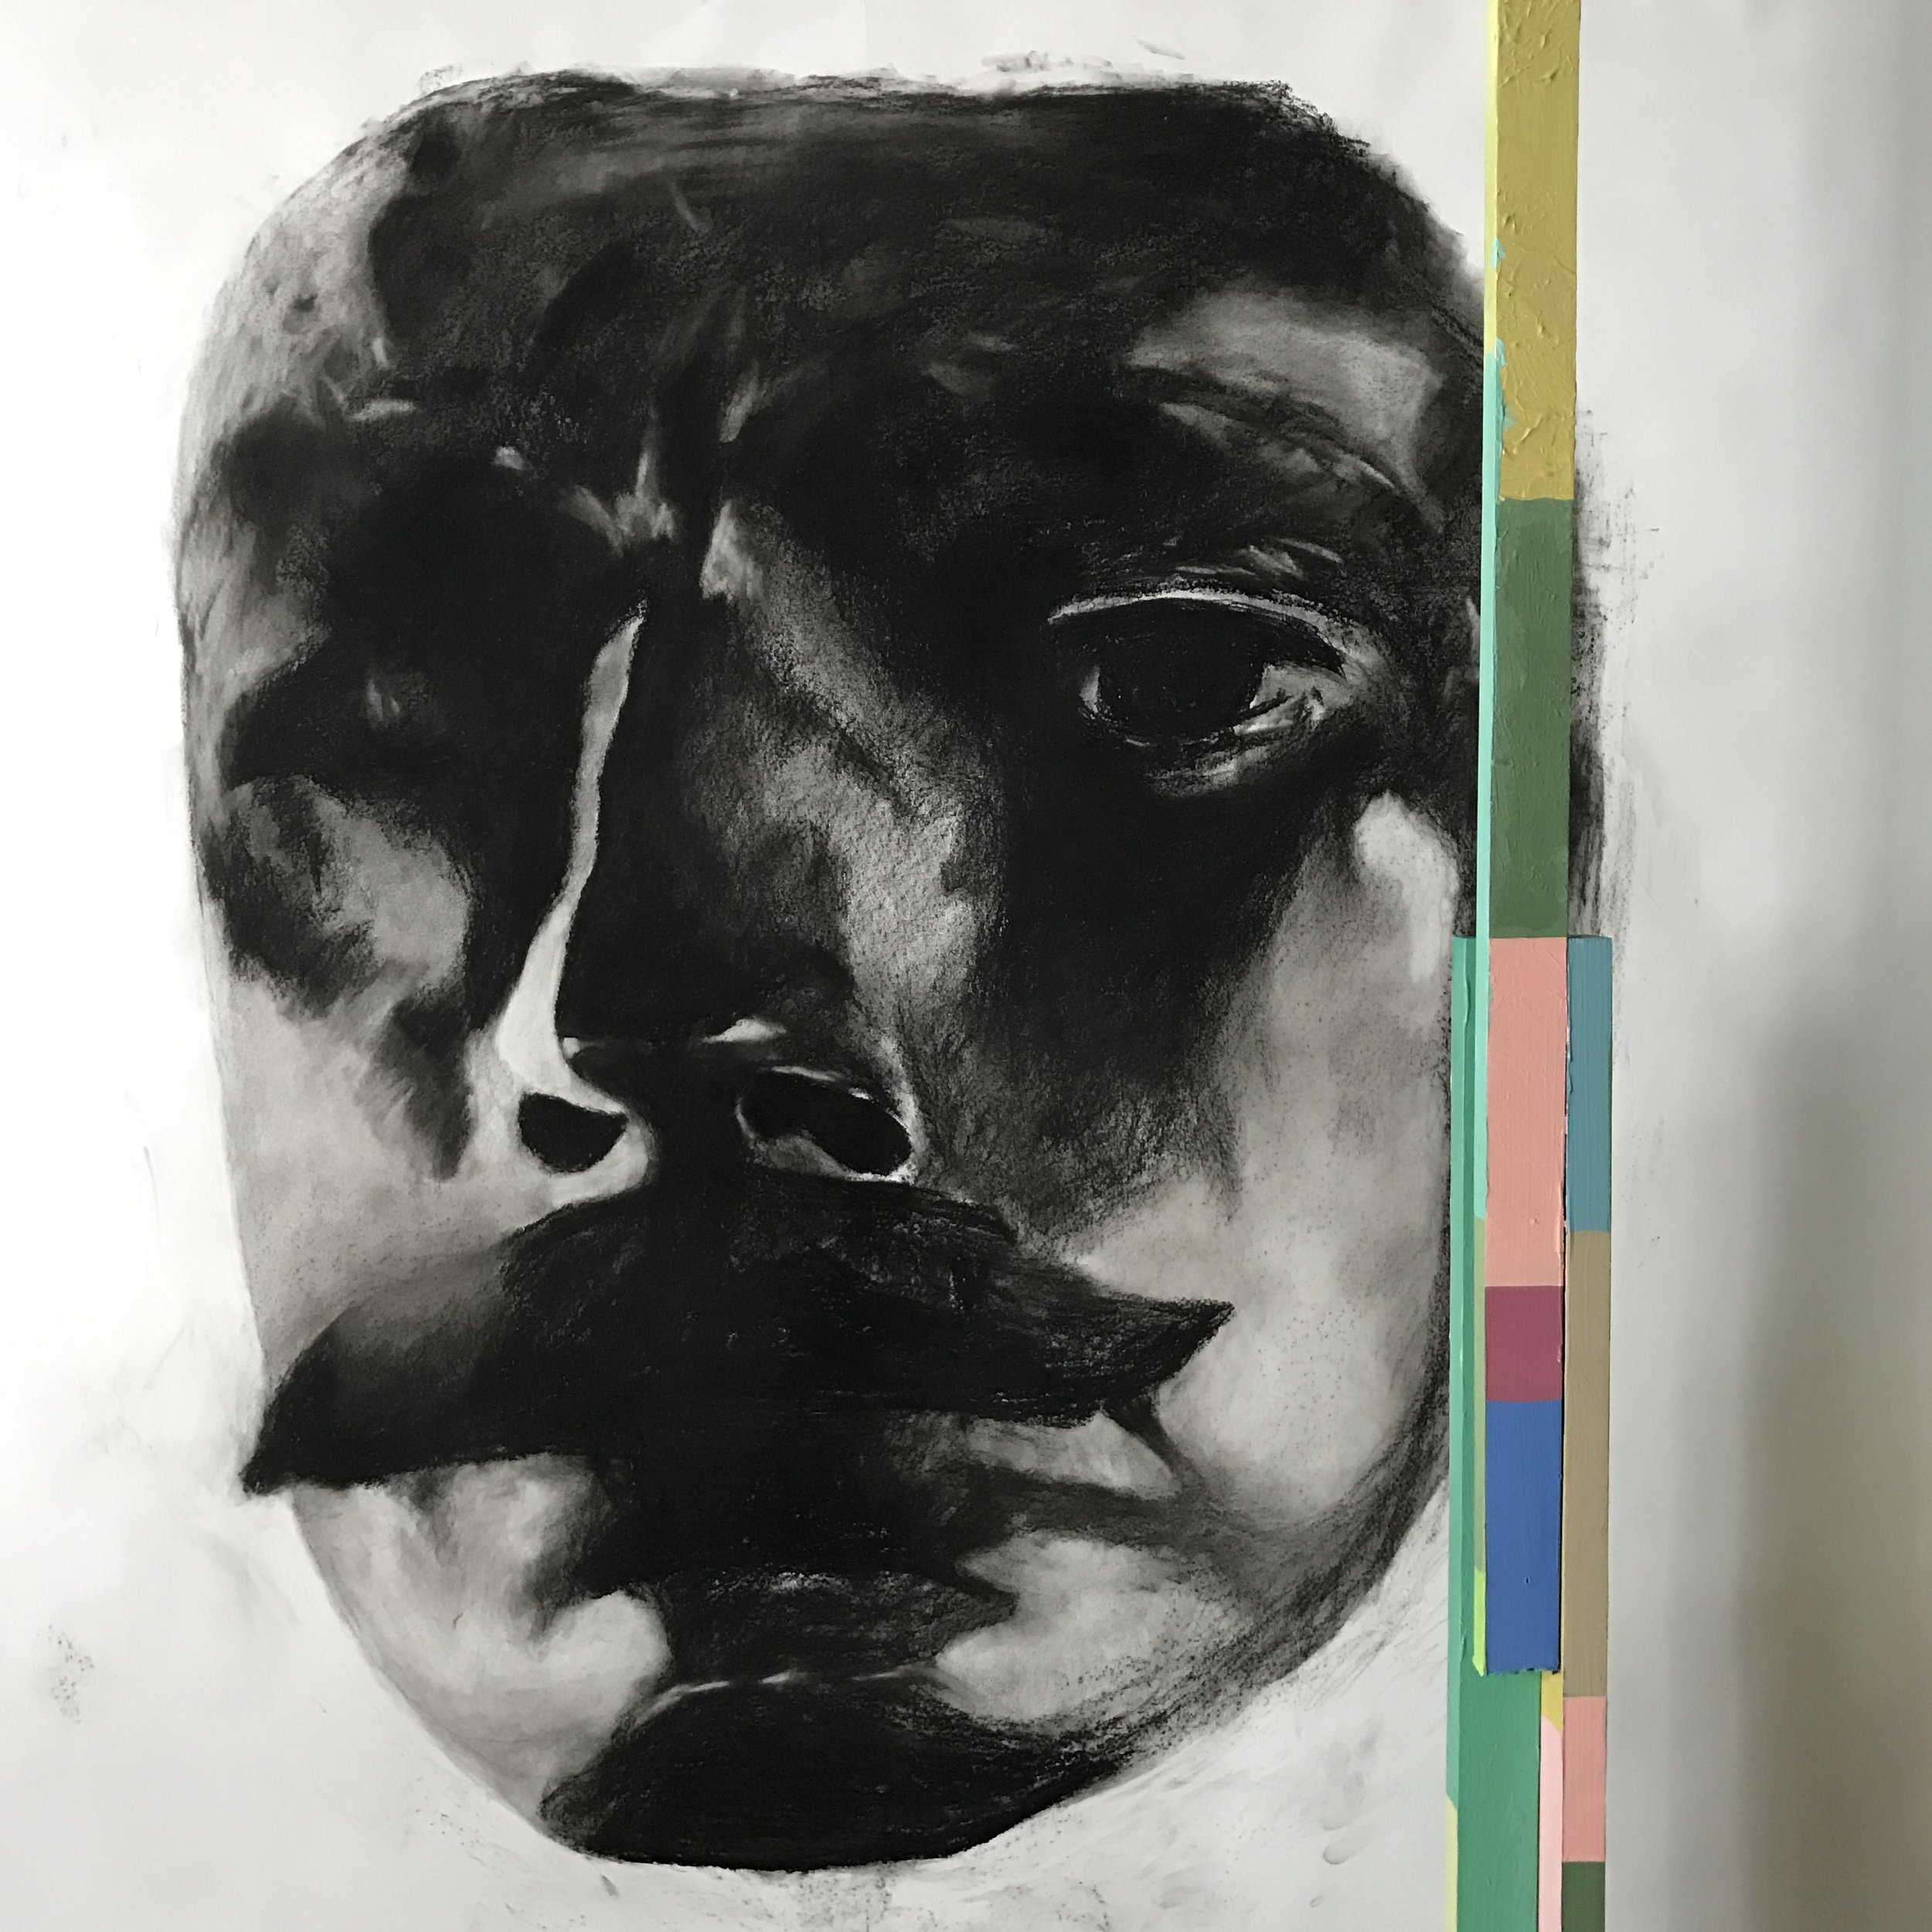 〈臉|The Face〉,炭筆於紙|Charcoal on paper,130 x 150 cm|51 x 59 inches,2018